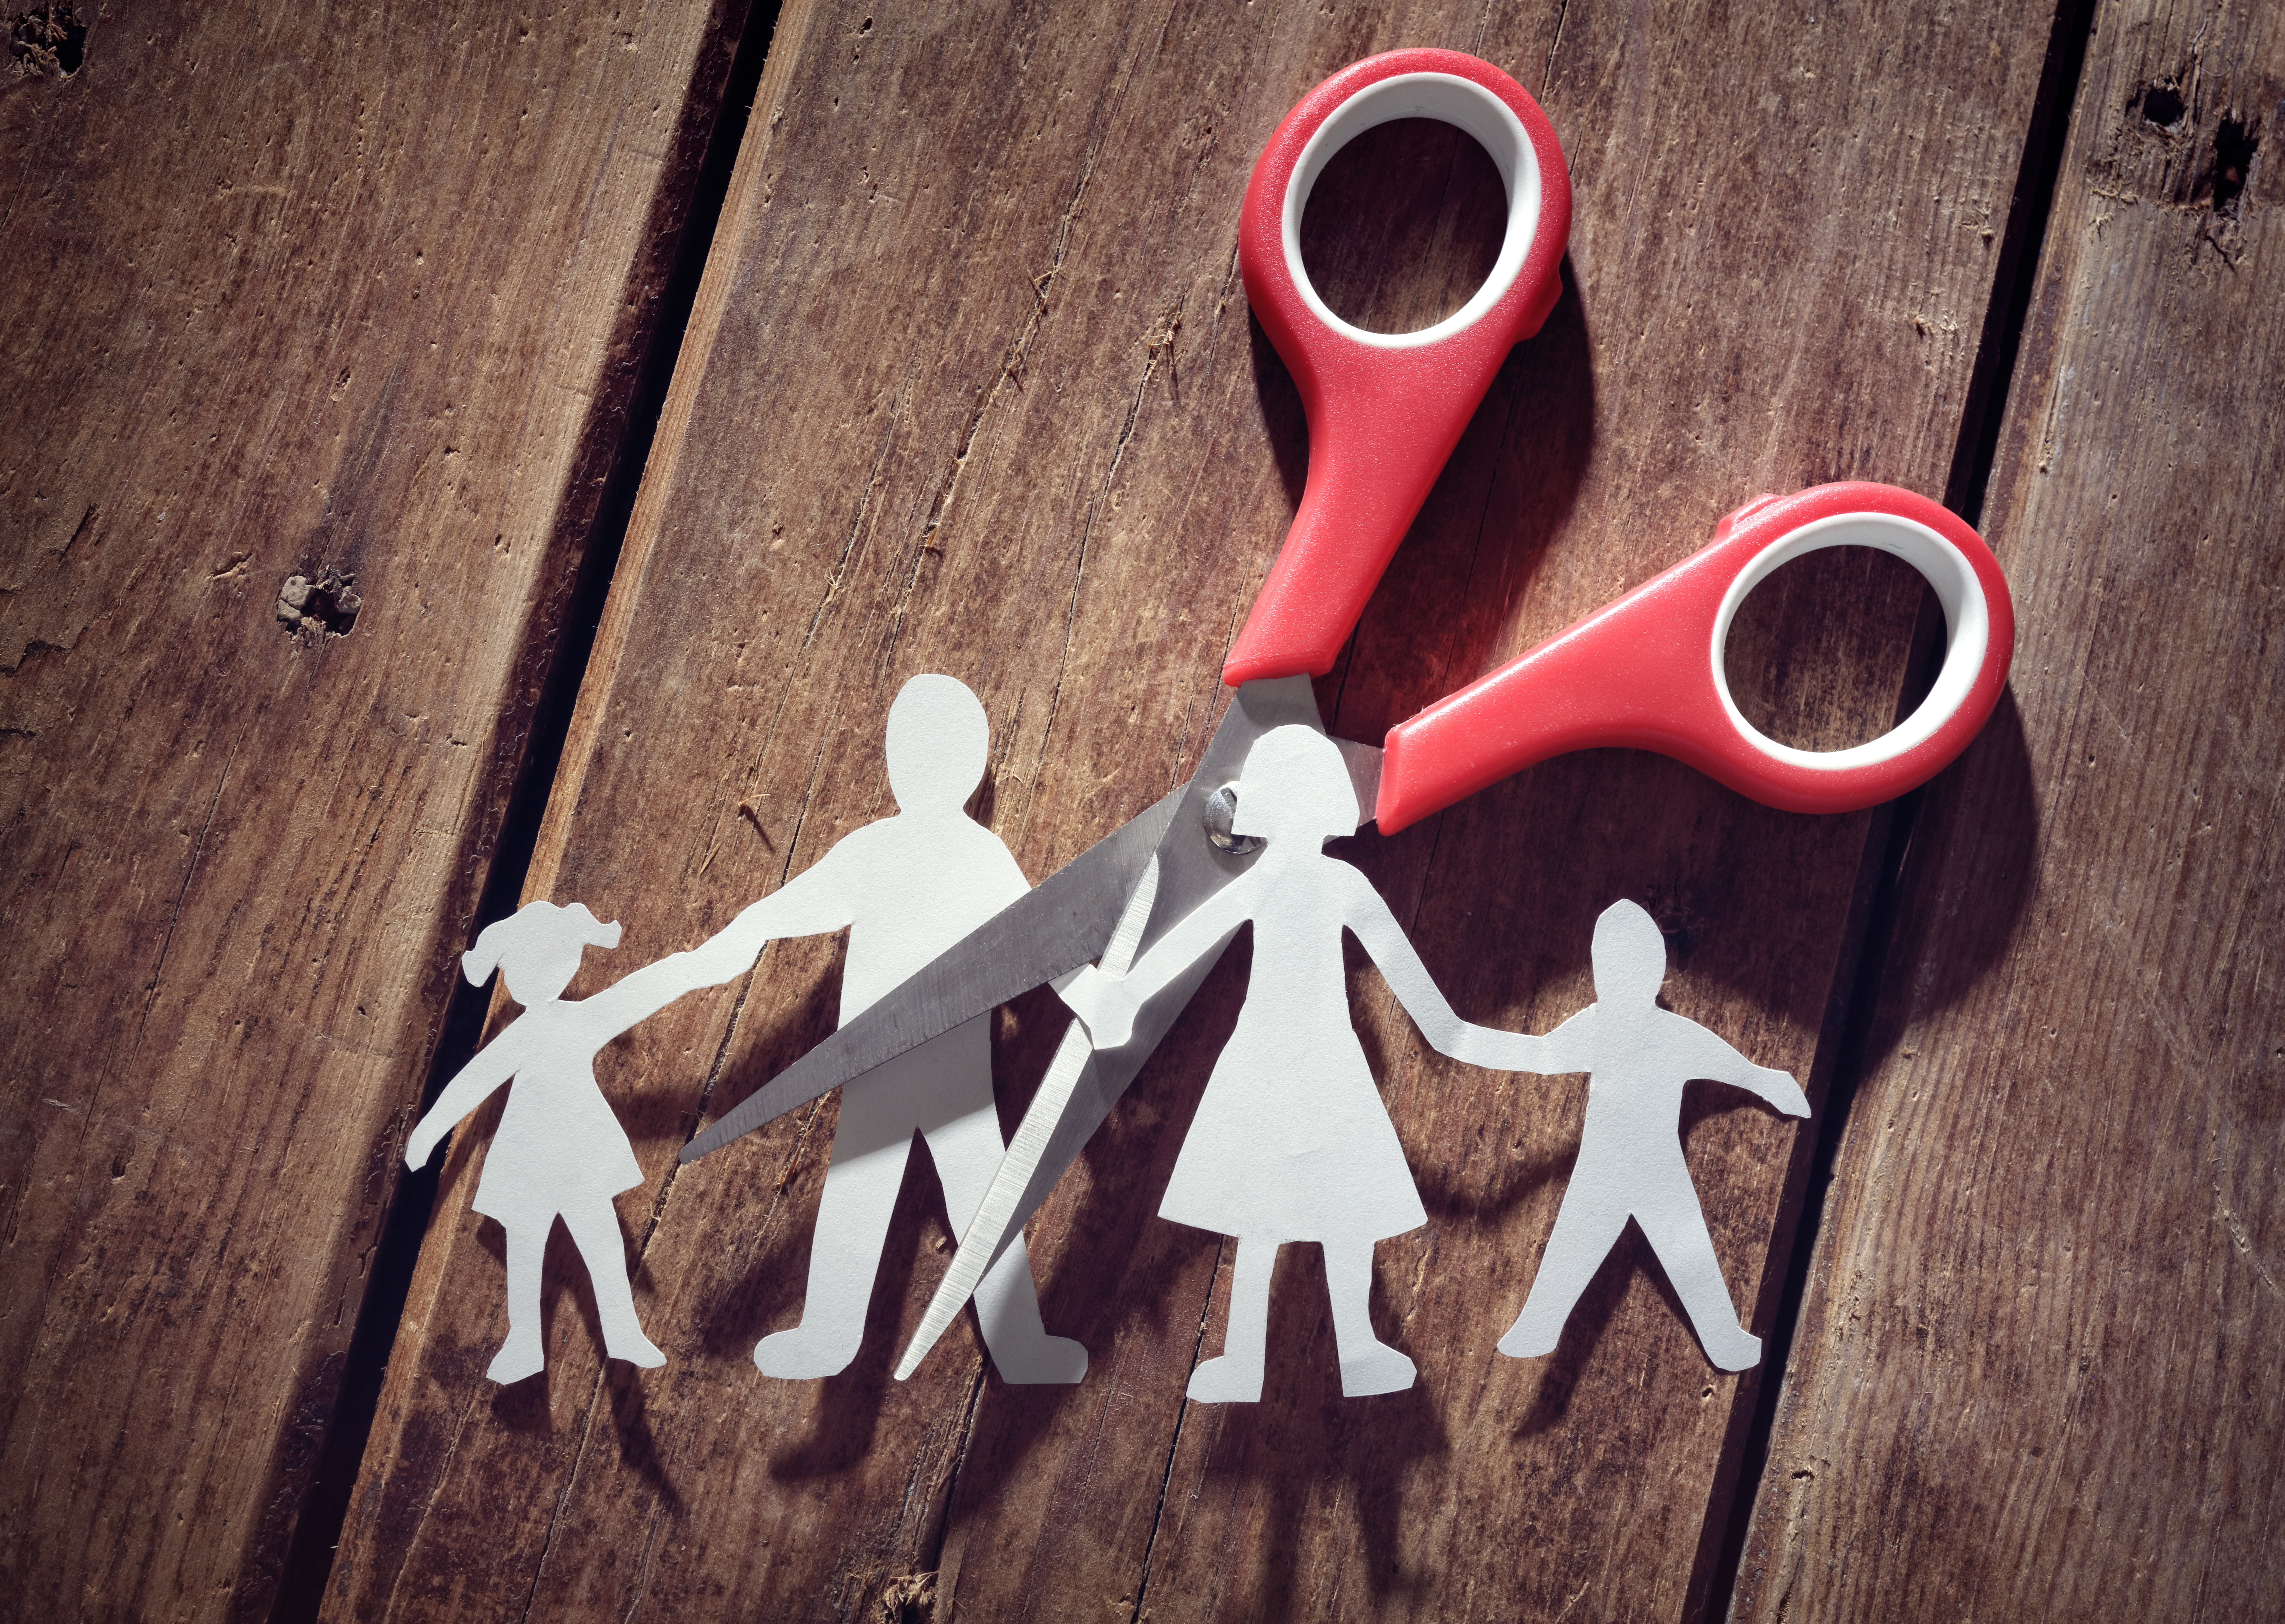 Difference between sole and shared custody of the children